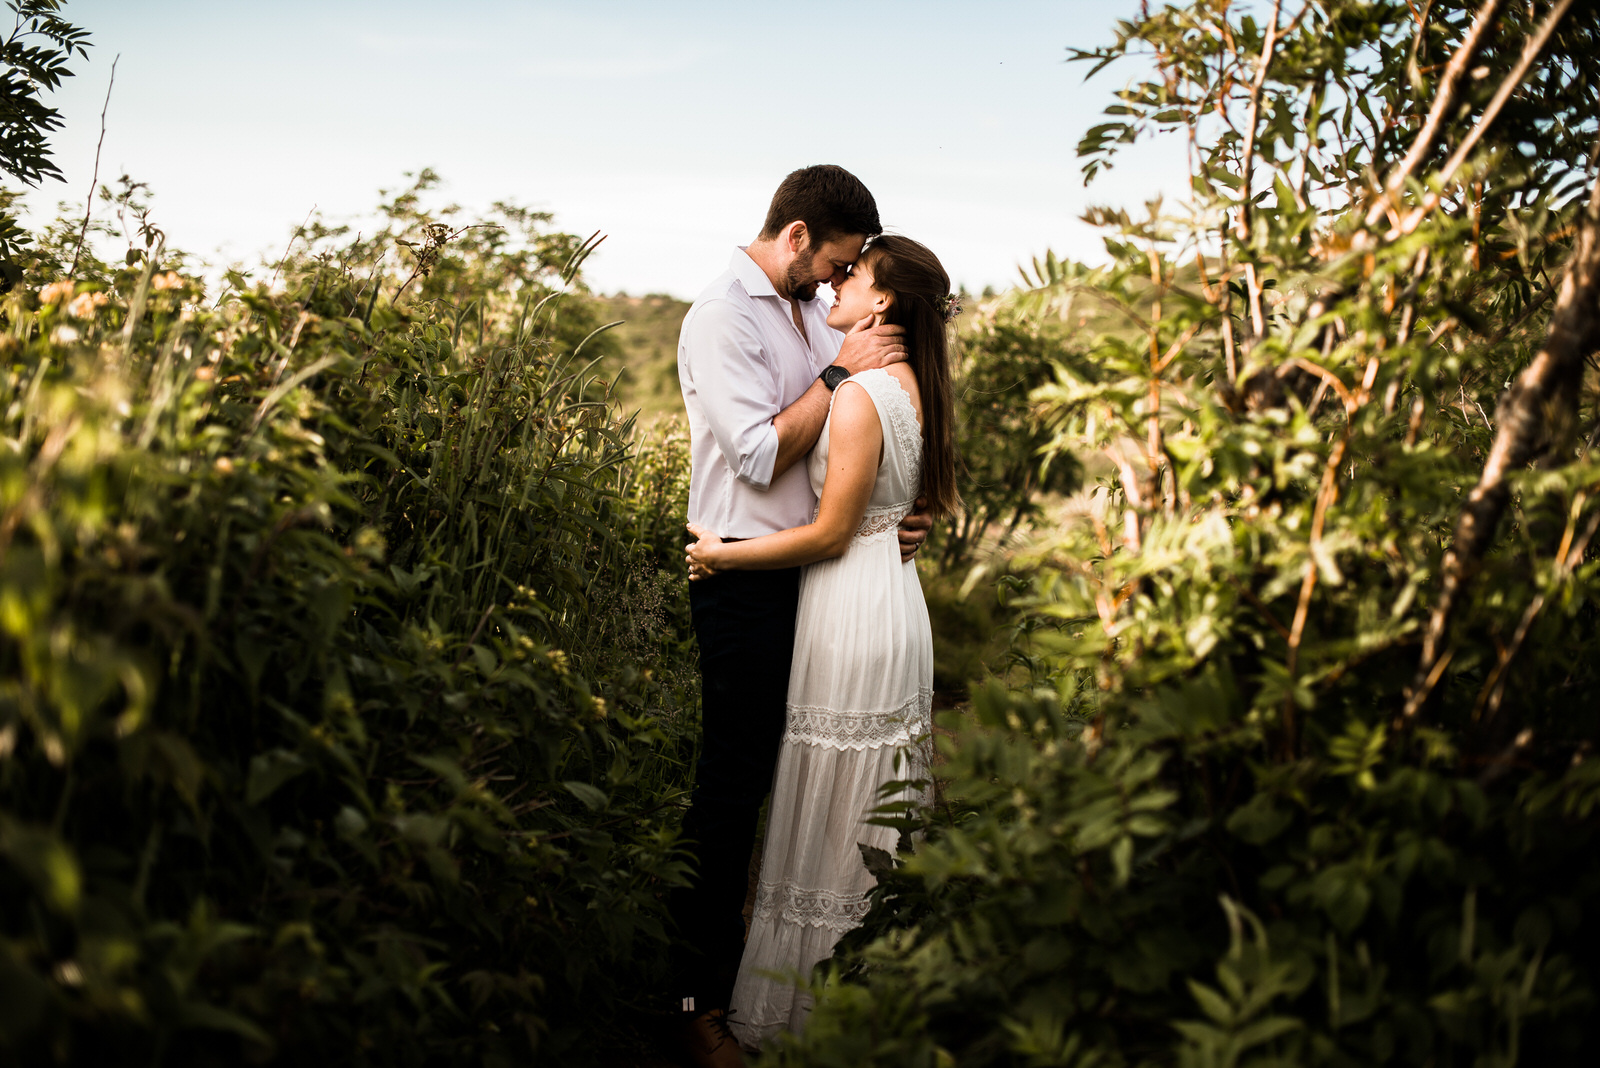 Black-Balsam-Engagement-Session-28.jpg